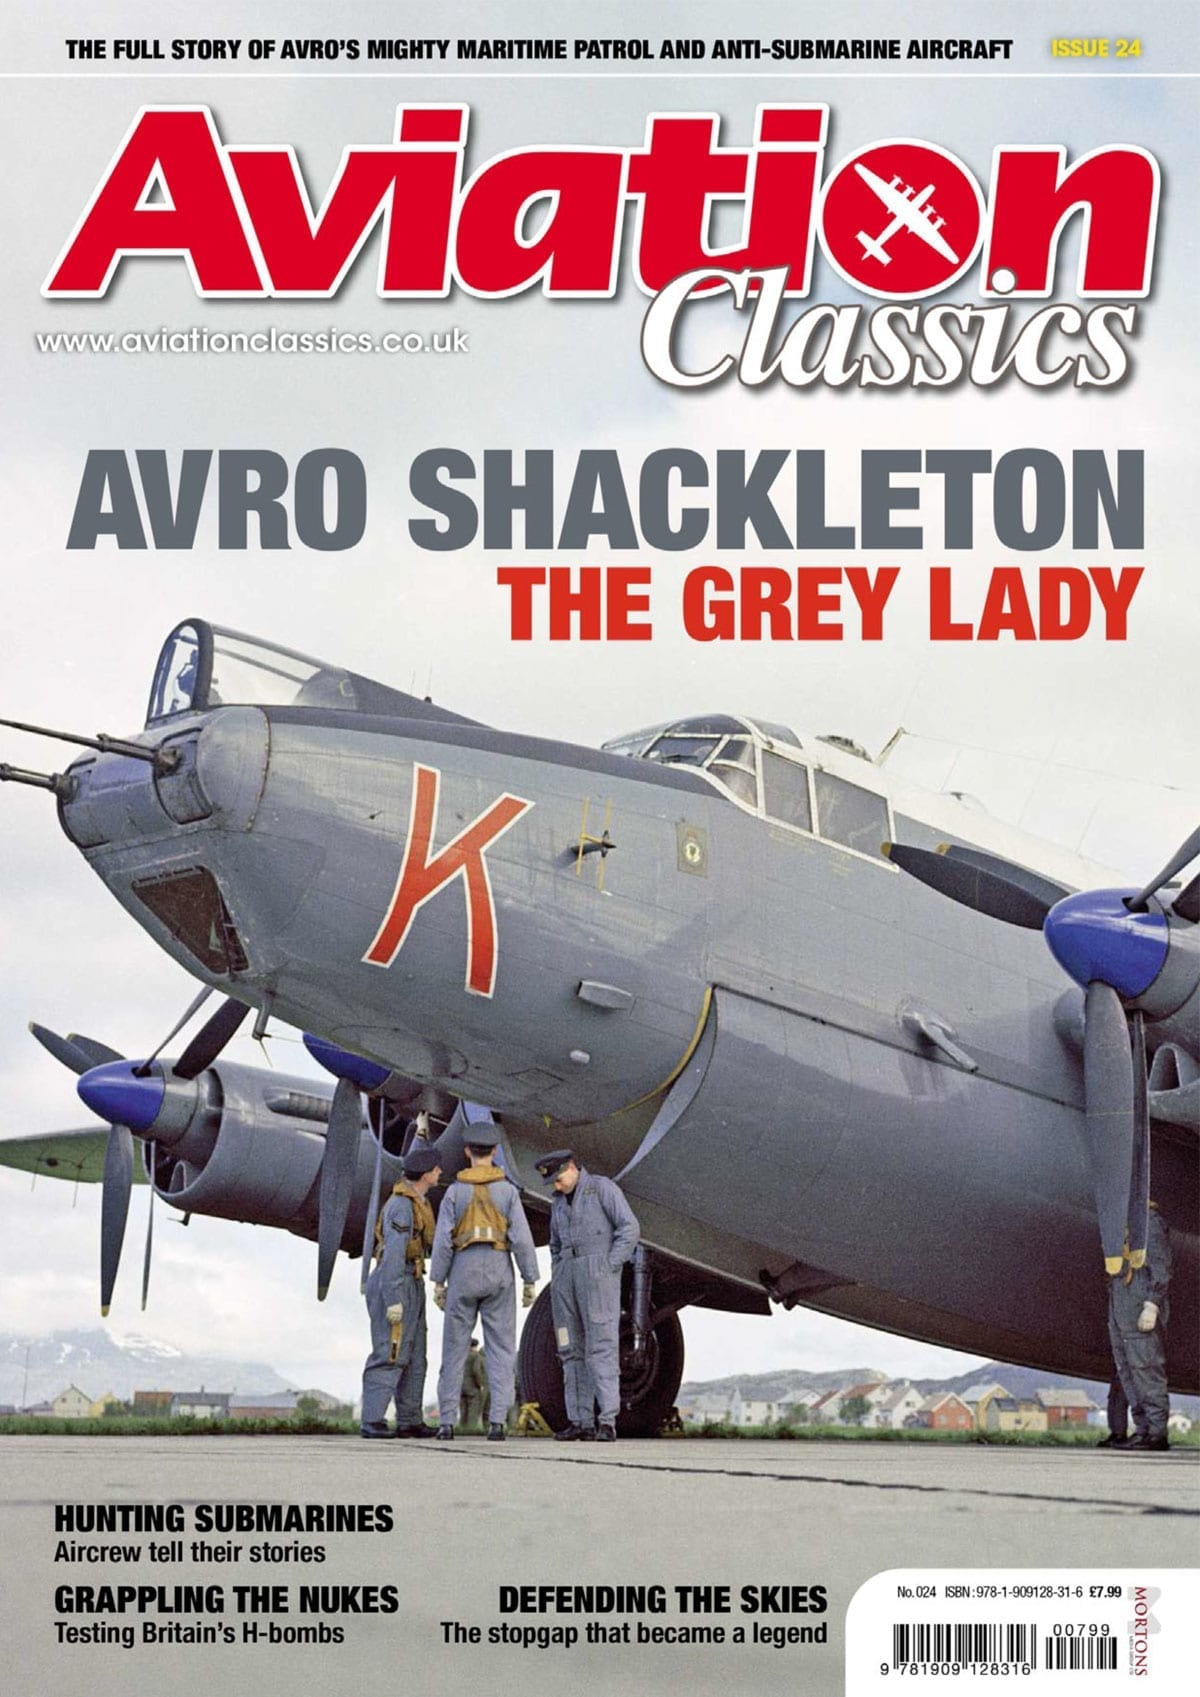 Aviation Classics - Avro Shackleton The Grey Lady